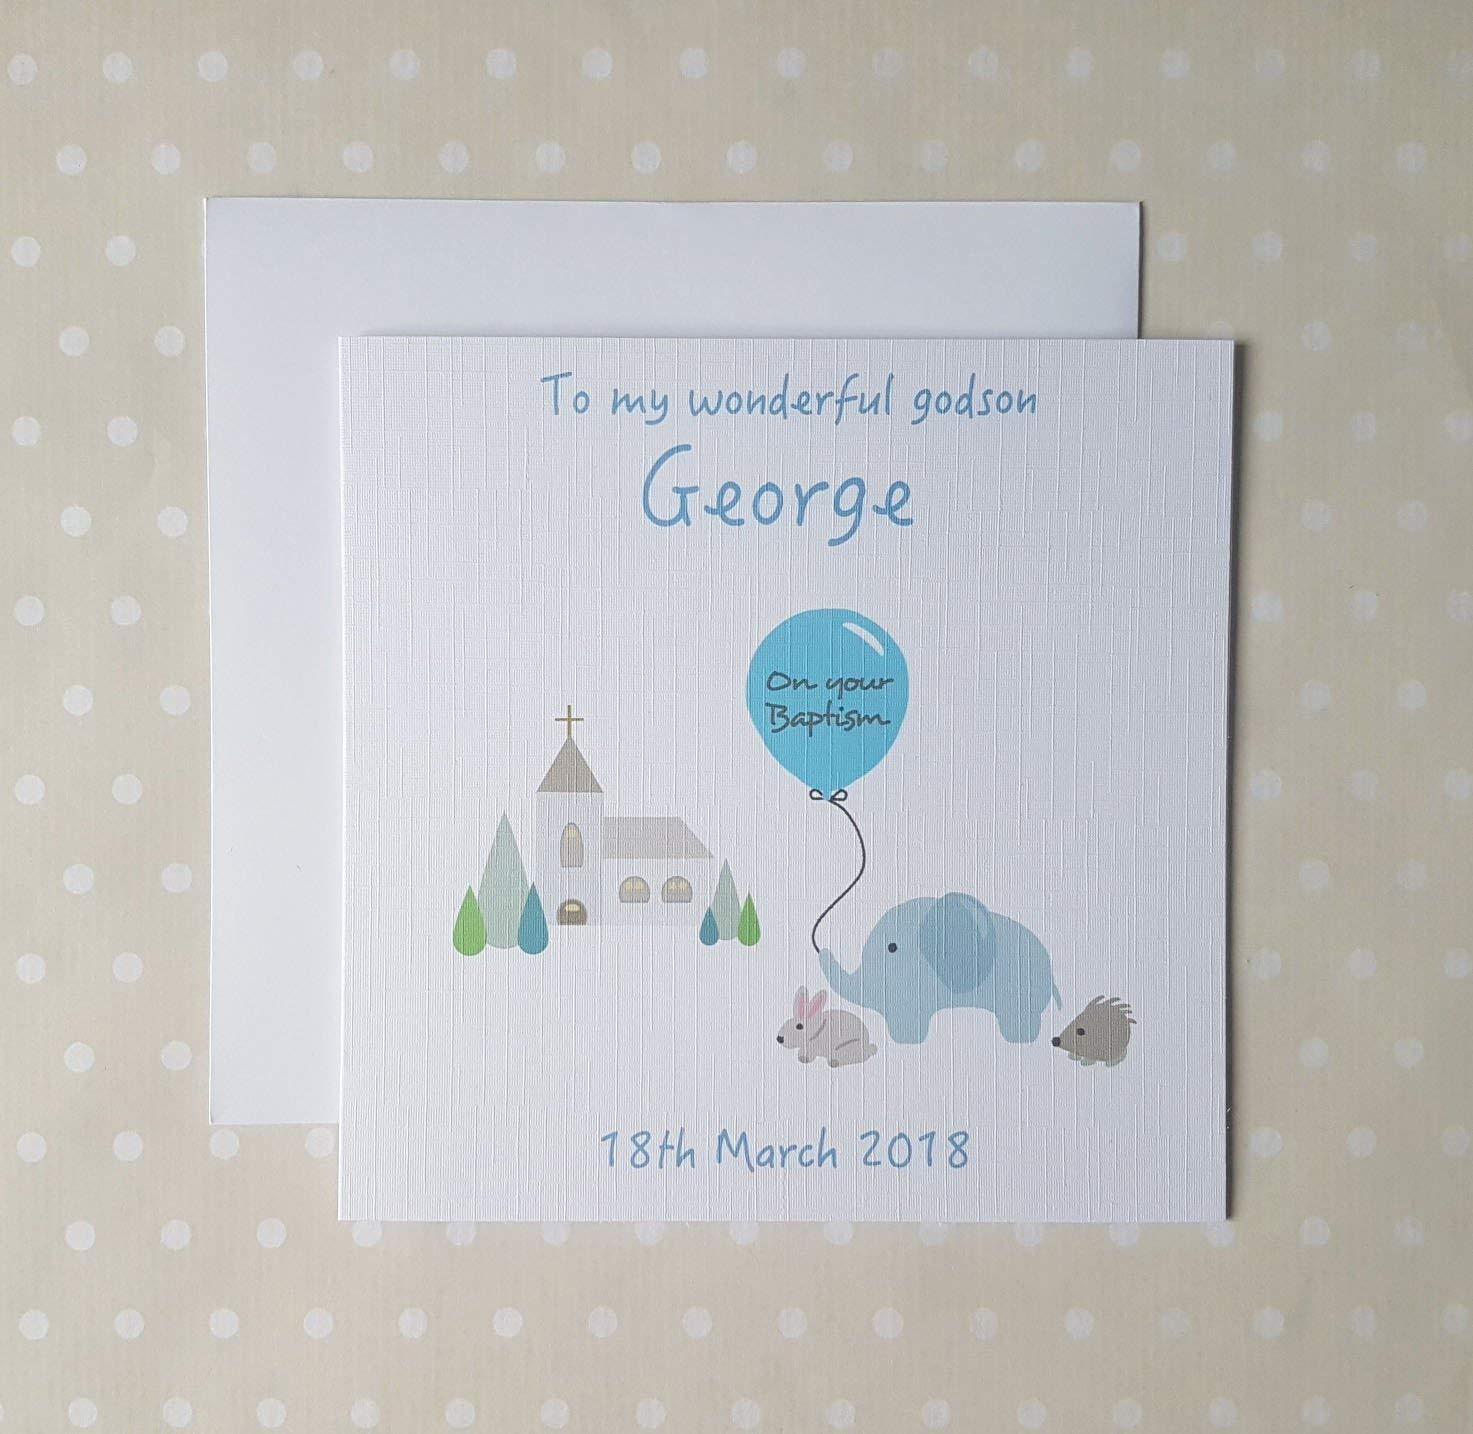 Baptism greeting card for Boys. Personalised Baby Boy Baptism Card for Son, grandson, Godson, Nephew, Brother, Baby Boy or Little Boy. Cute Baptism Card with Date. Free UK delivery.